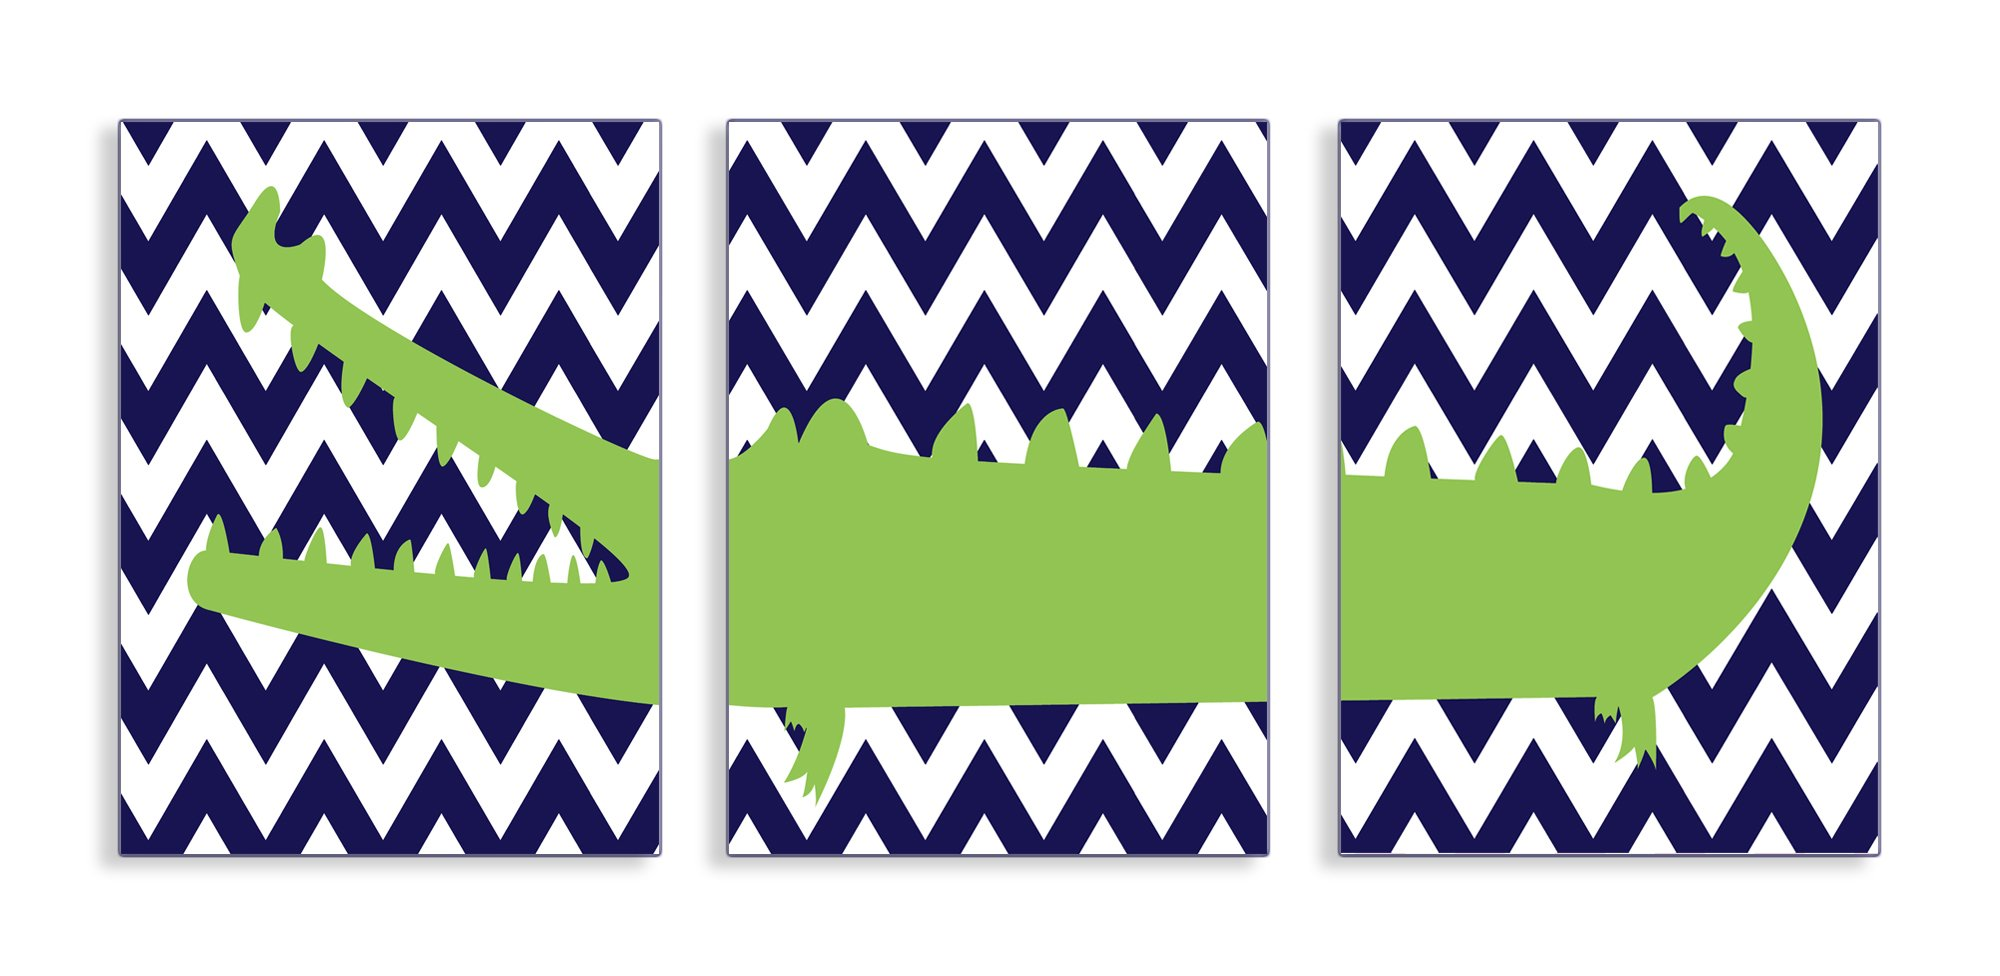 The Kids Room by Stupell Alligator On Navy Chevron 3-Pc Rectangle Wall Plaque Set, 11 x 0.5 x 15, Proudly Made in USA